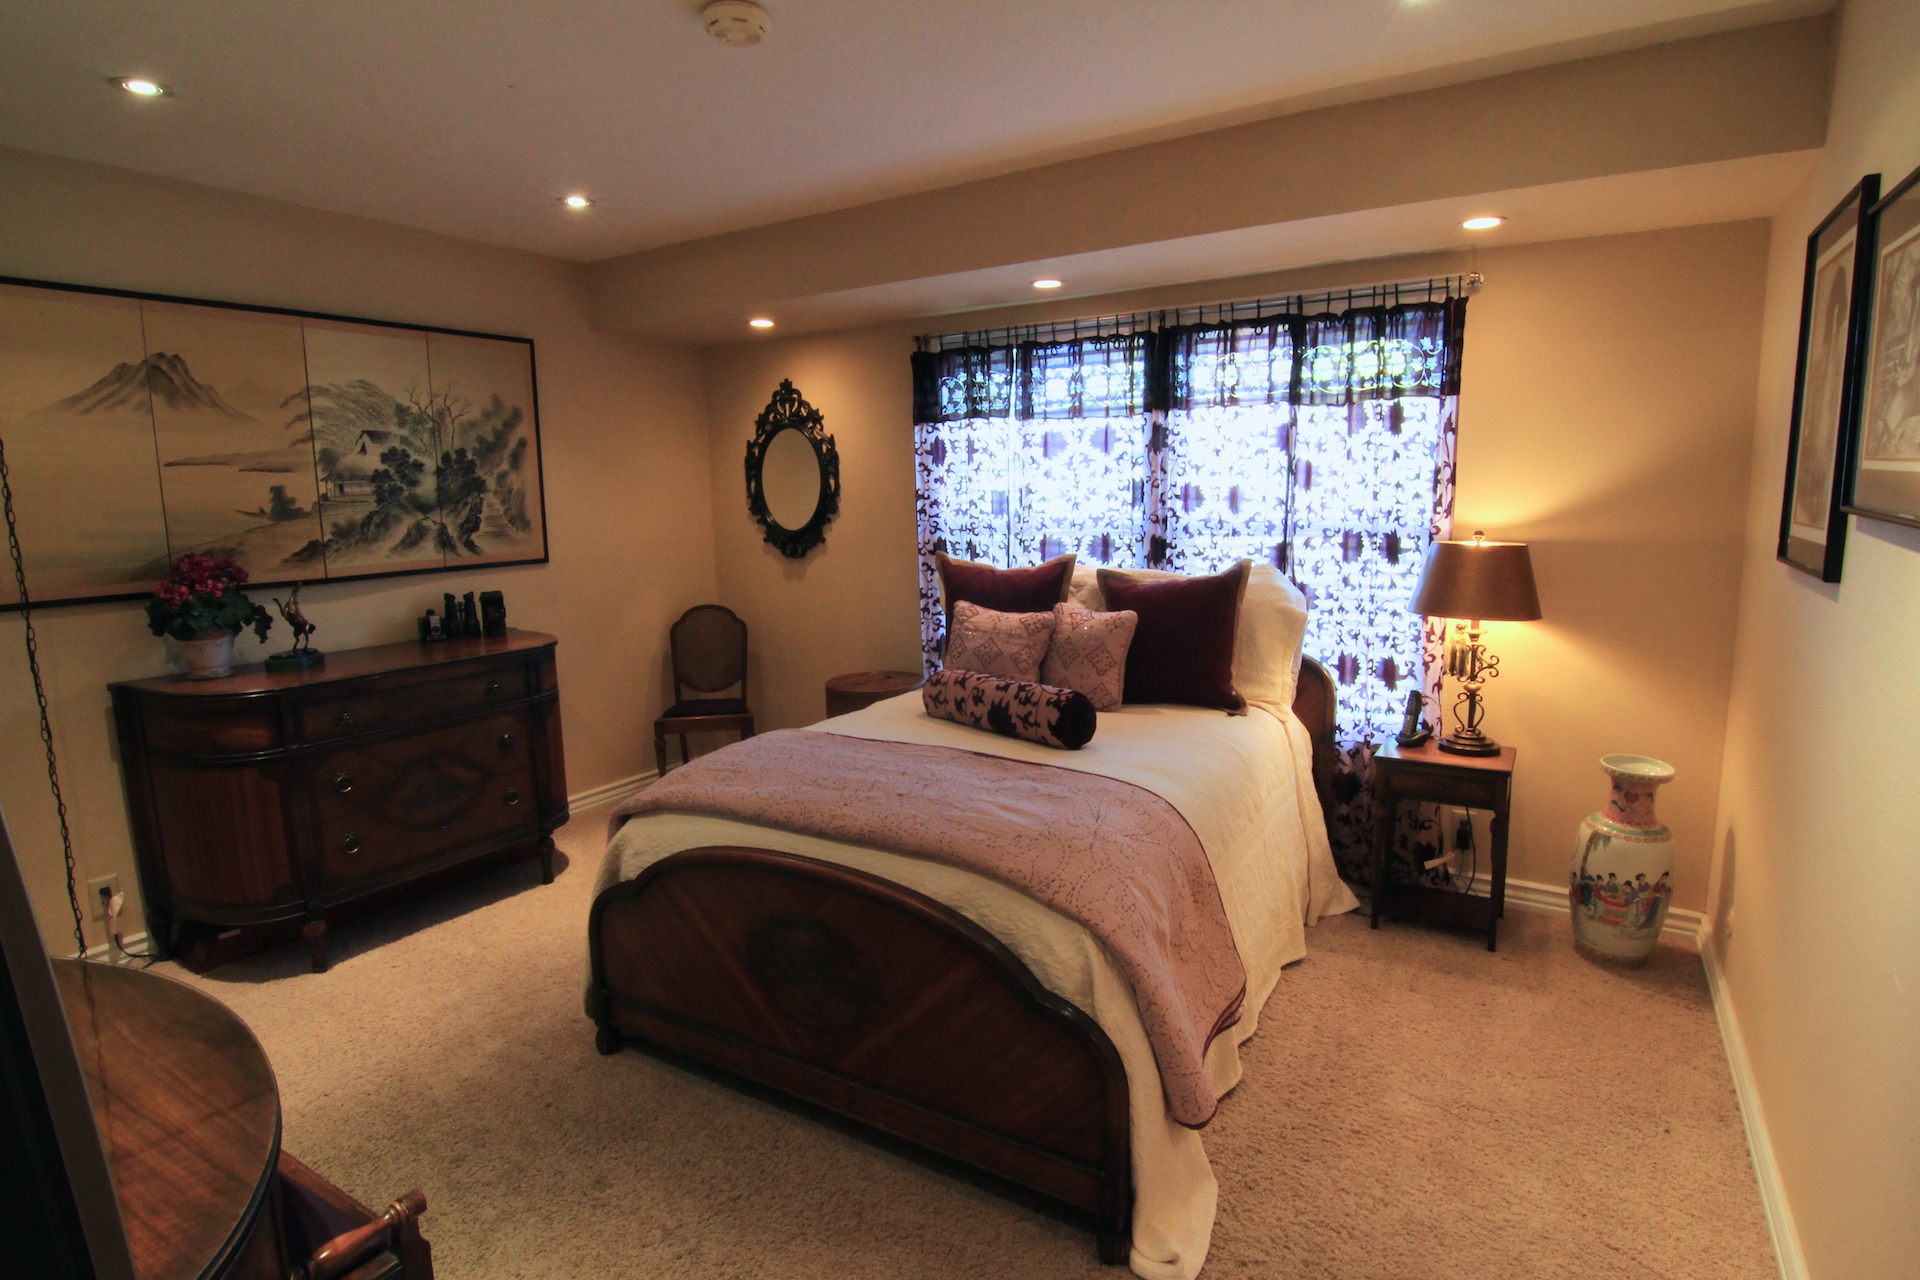 1320 Rambling Bridle Path Simi Valley Bedroom 3 Community Home Buying Selling Real Estate Guide